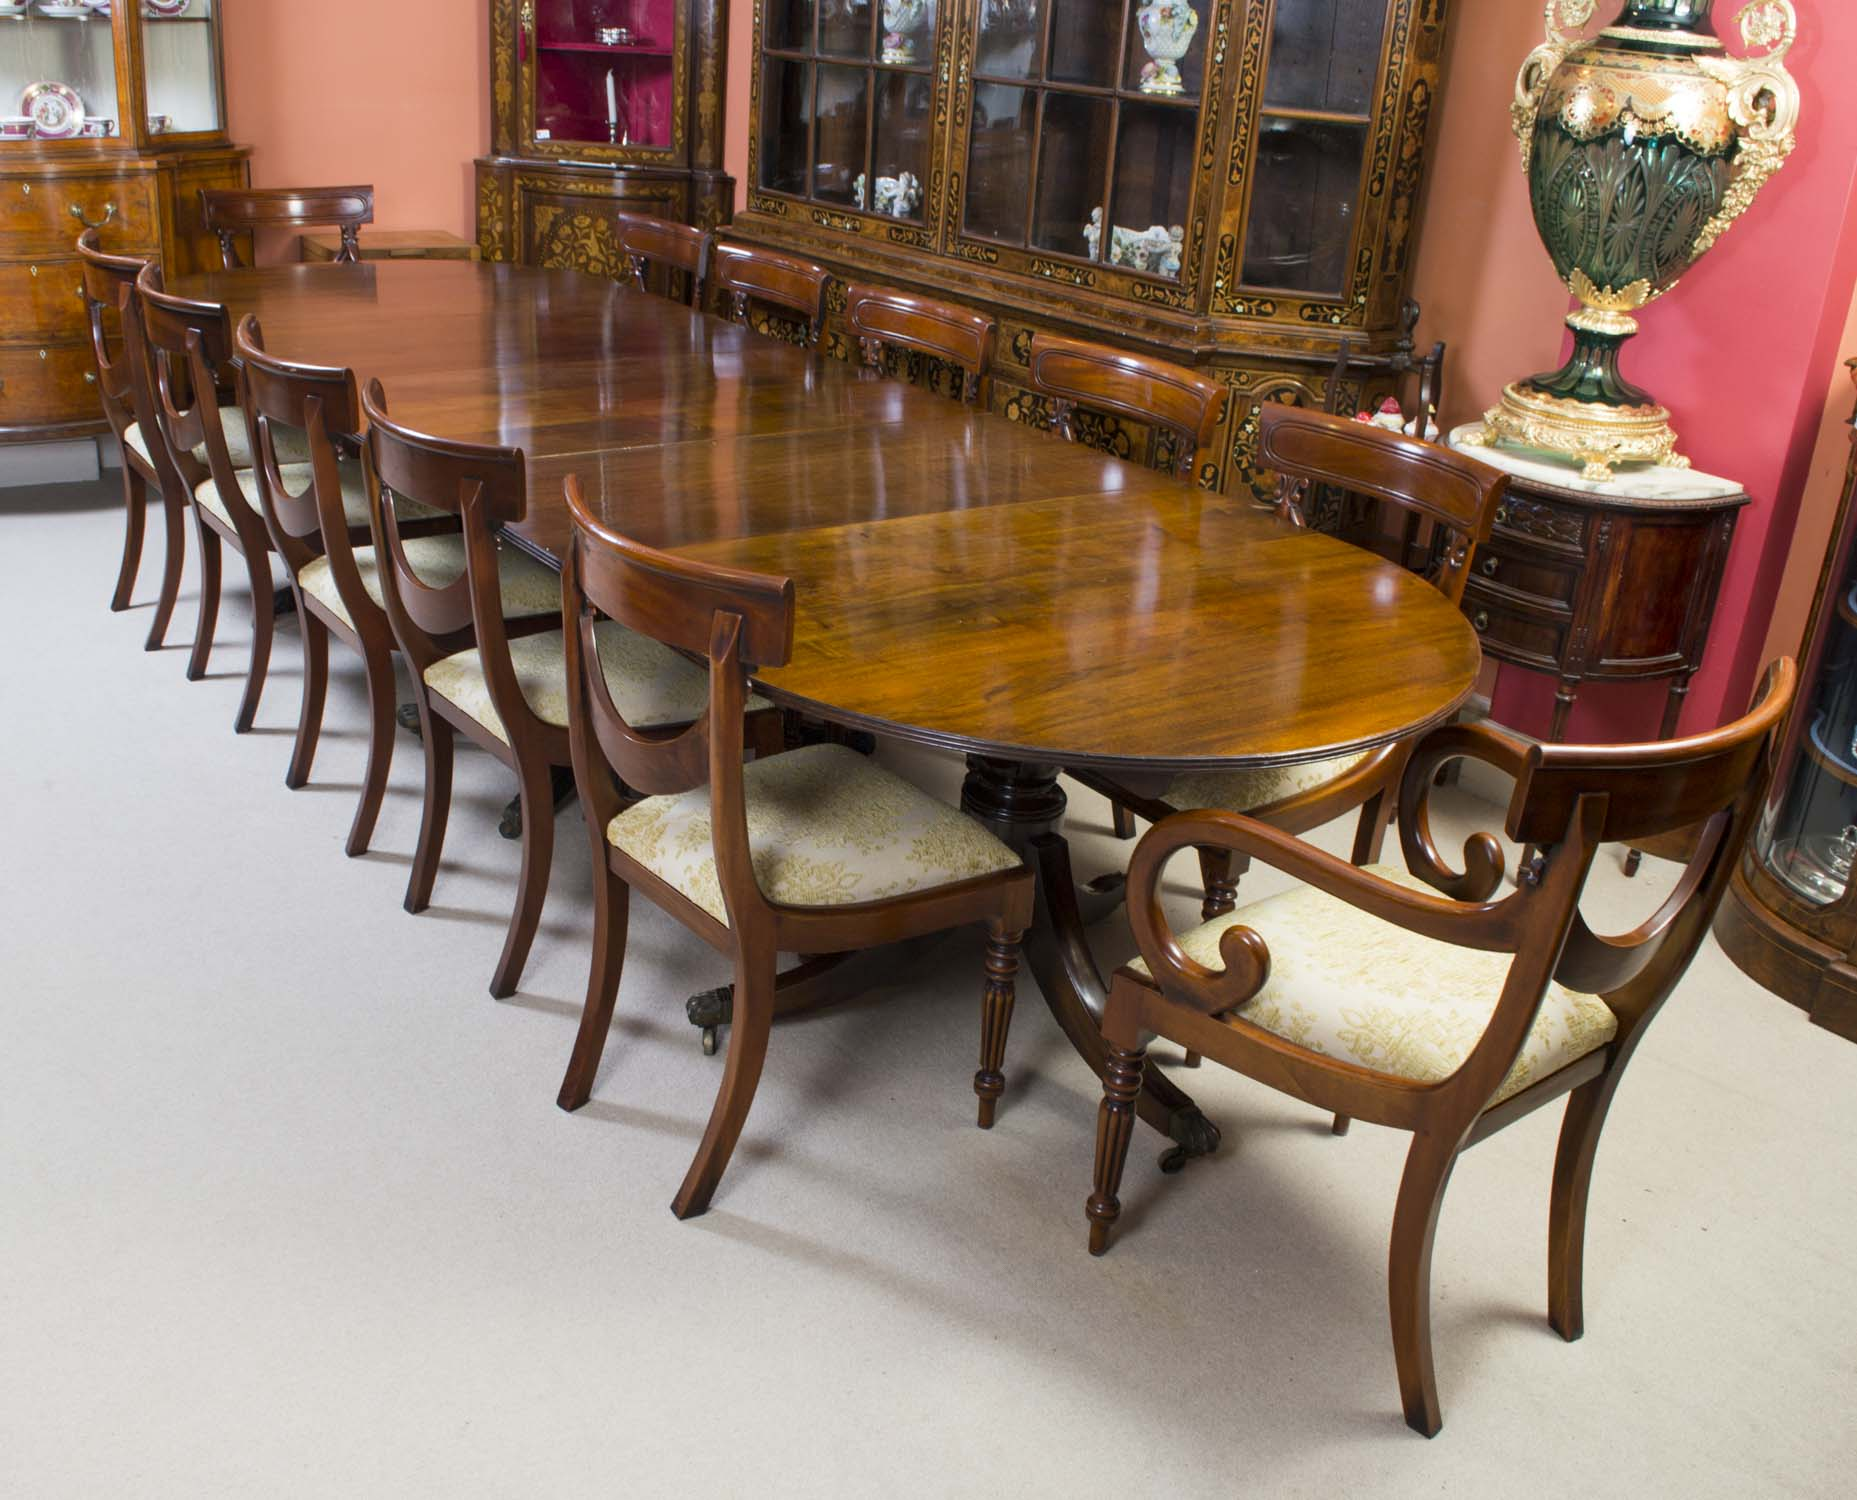 12 Chairs Antique Regency Mahogany Dining Table C1920 And 12 Chairs